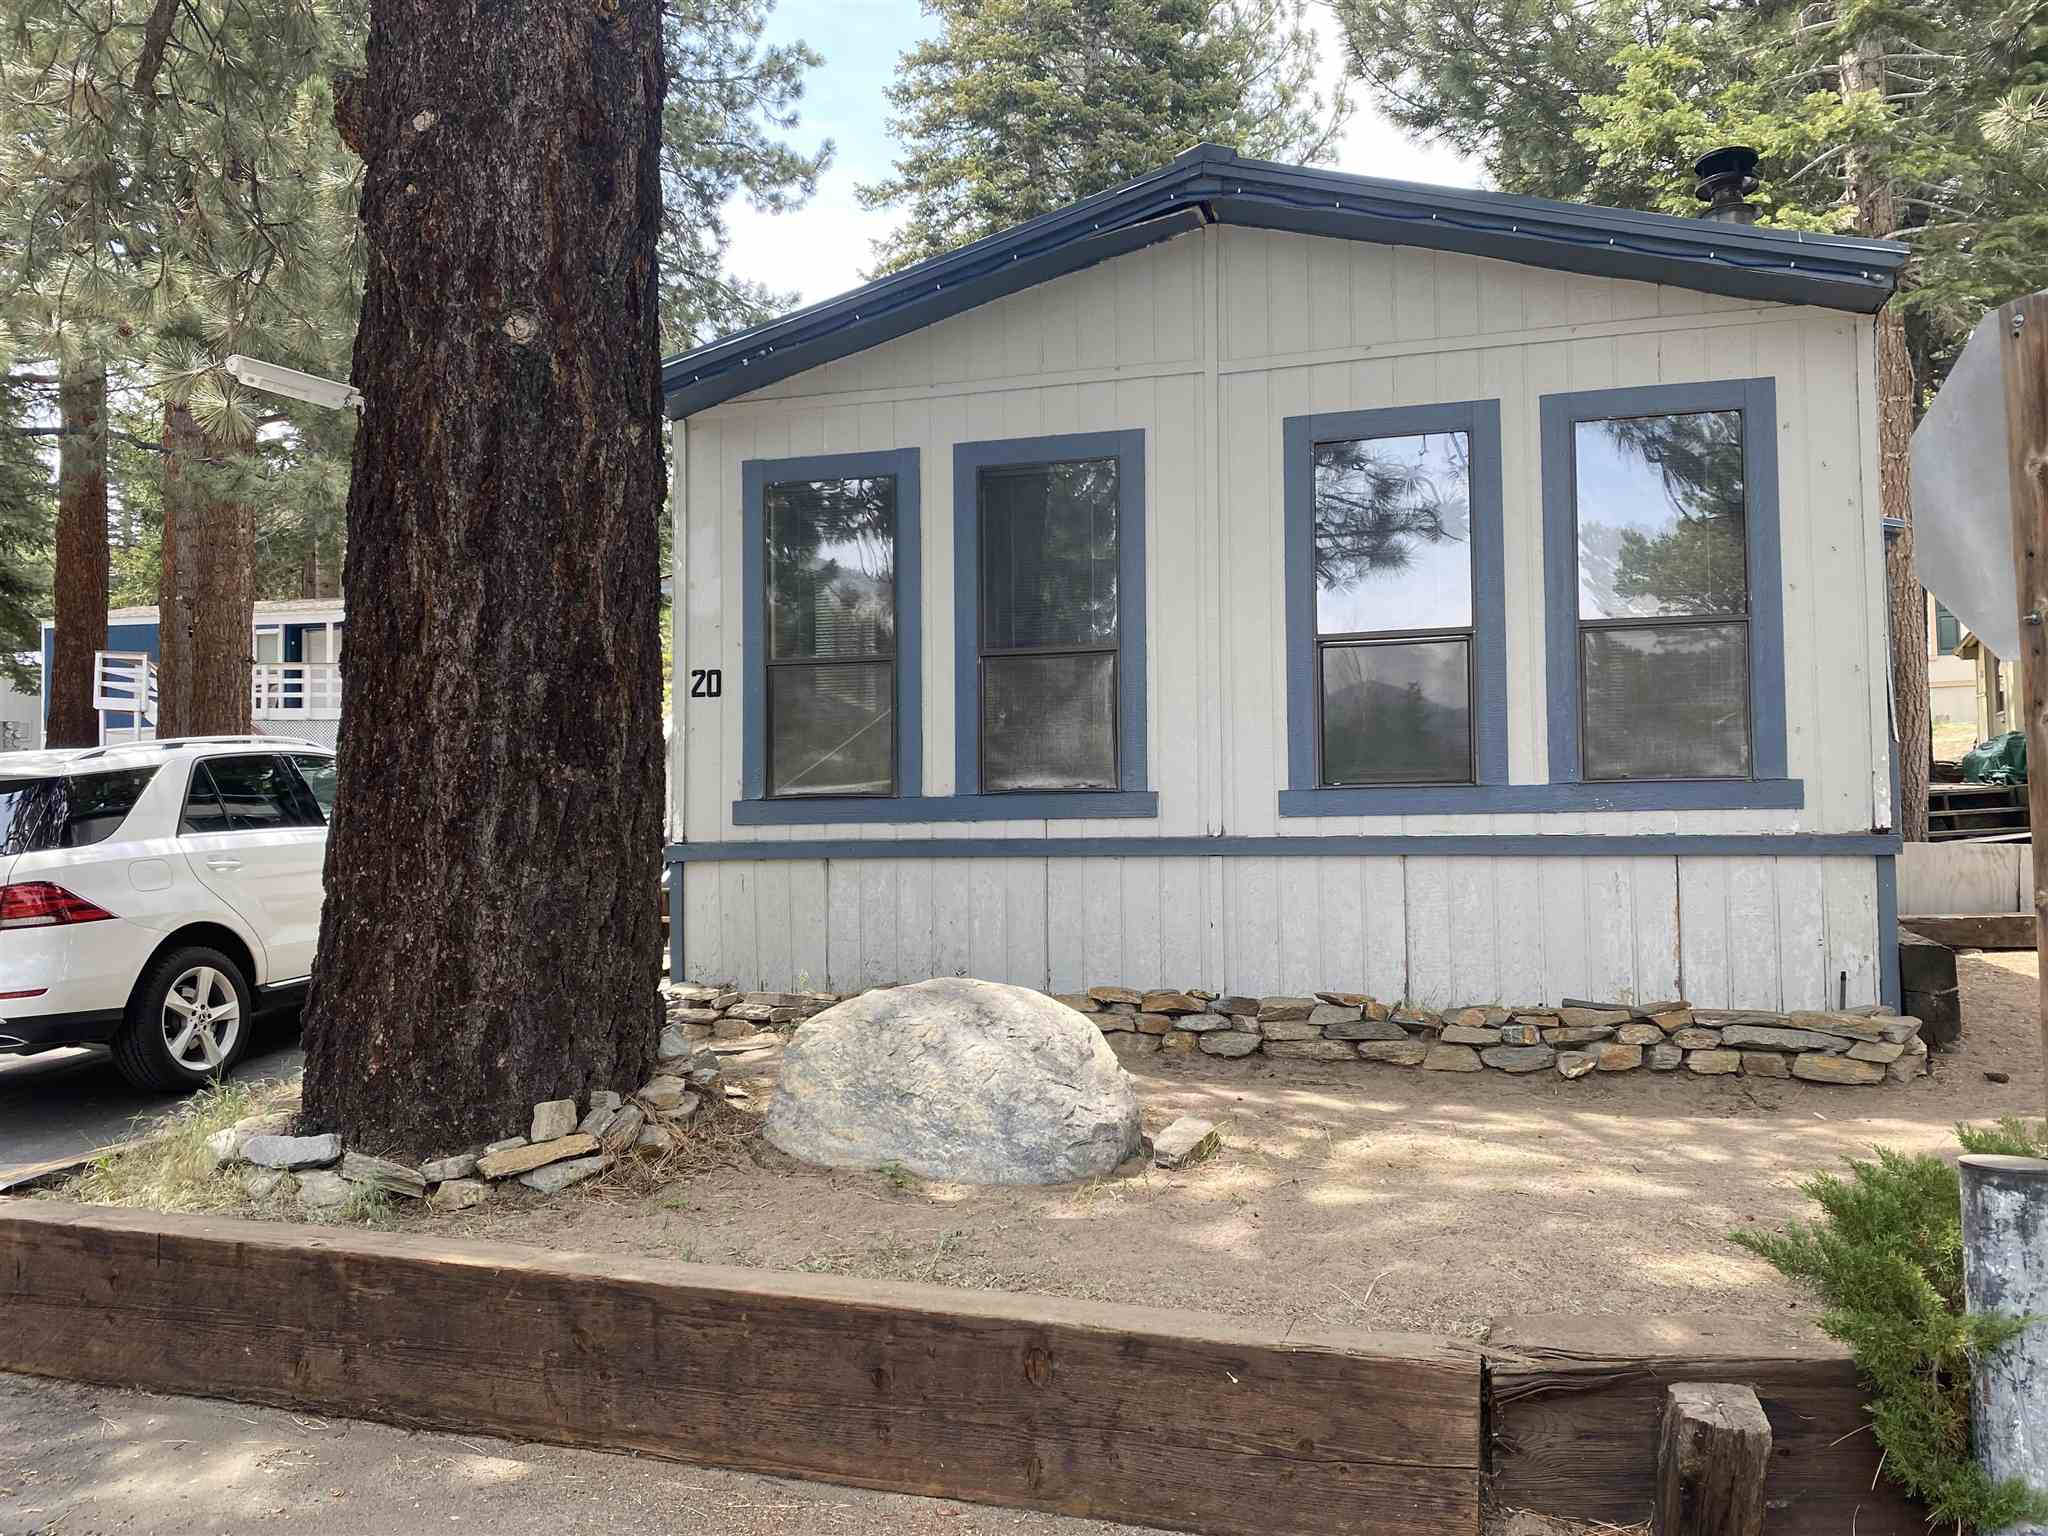 AS IS, Cash only purchase. Sunny south facing manufactured home with mountain views. 2 bdrm, 1.25 bath, 2 car parking, fixer upper at The Ski Trails Mobile Home Park. Approx 800 sq ft. Ski Trails requires a completed application be approved before a prospective buyer can take possession or close escrow. Agent recommends buyer have a professional home inspection.